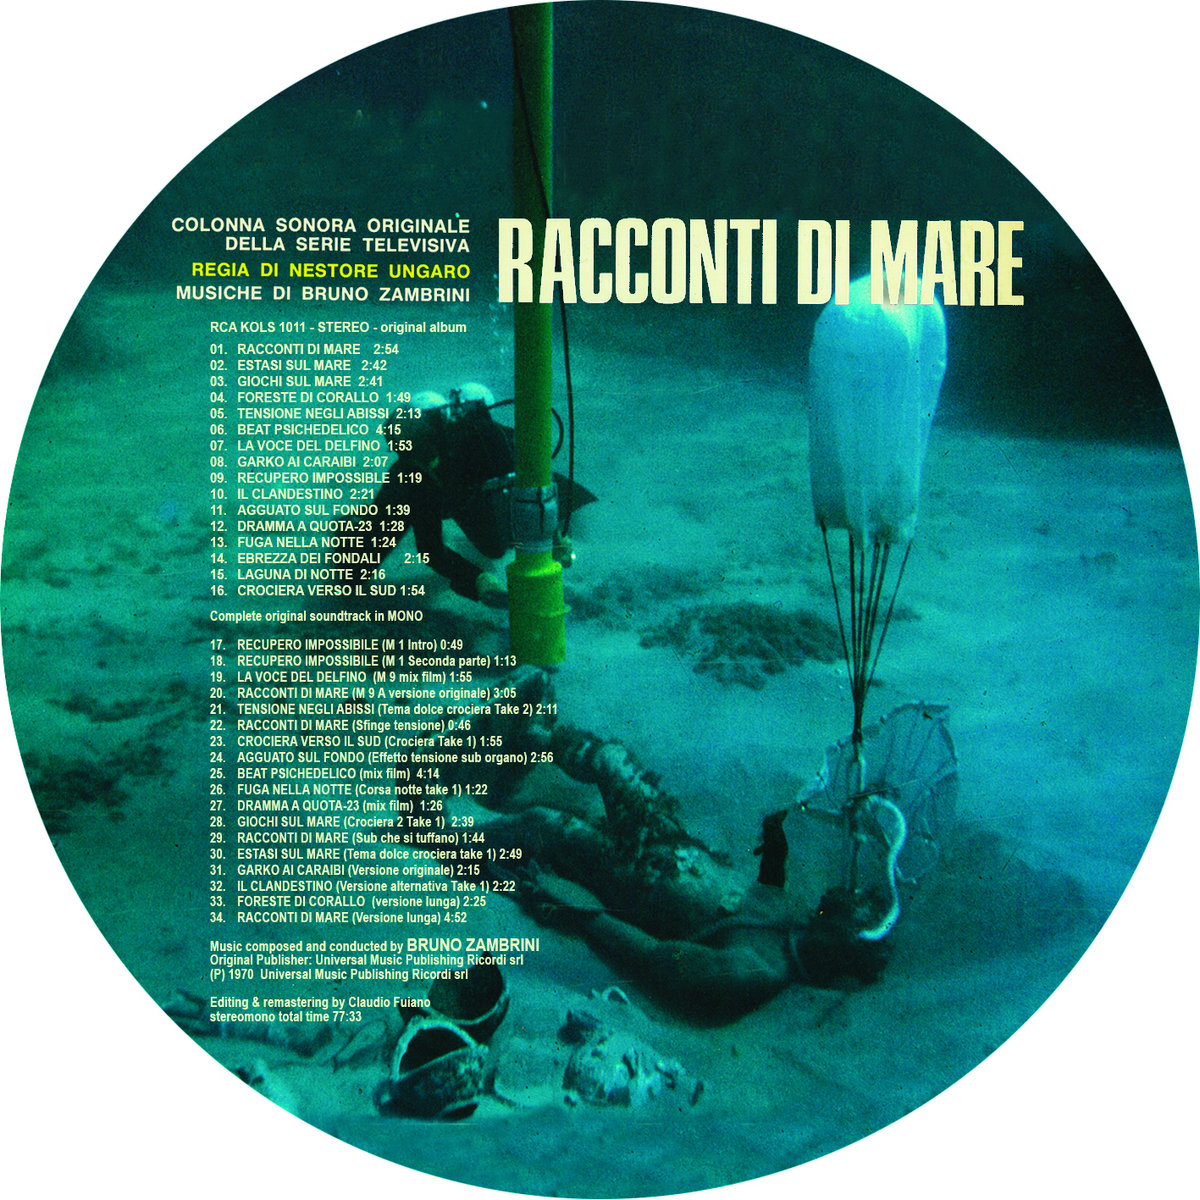 Racconti di mare sonor music editions limited edition 180 grams vinyl including the complete stereo recording session plus the full unreleased mono rca version hard cardboard quality sleeve publicscrutiny Image collections